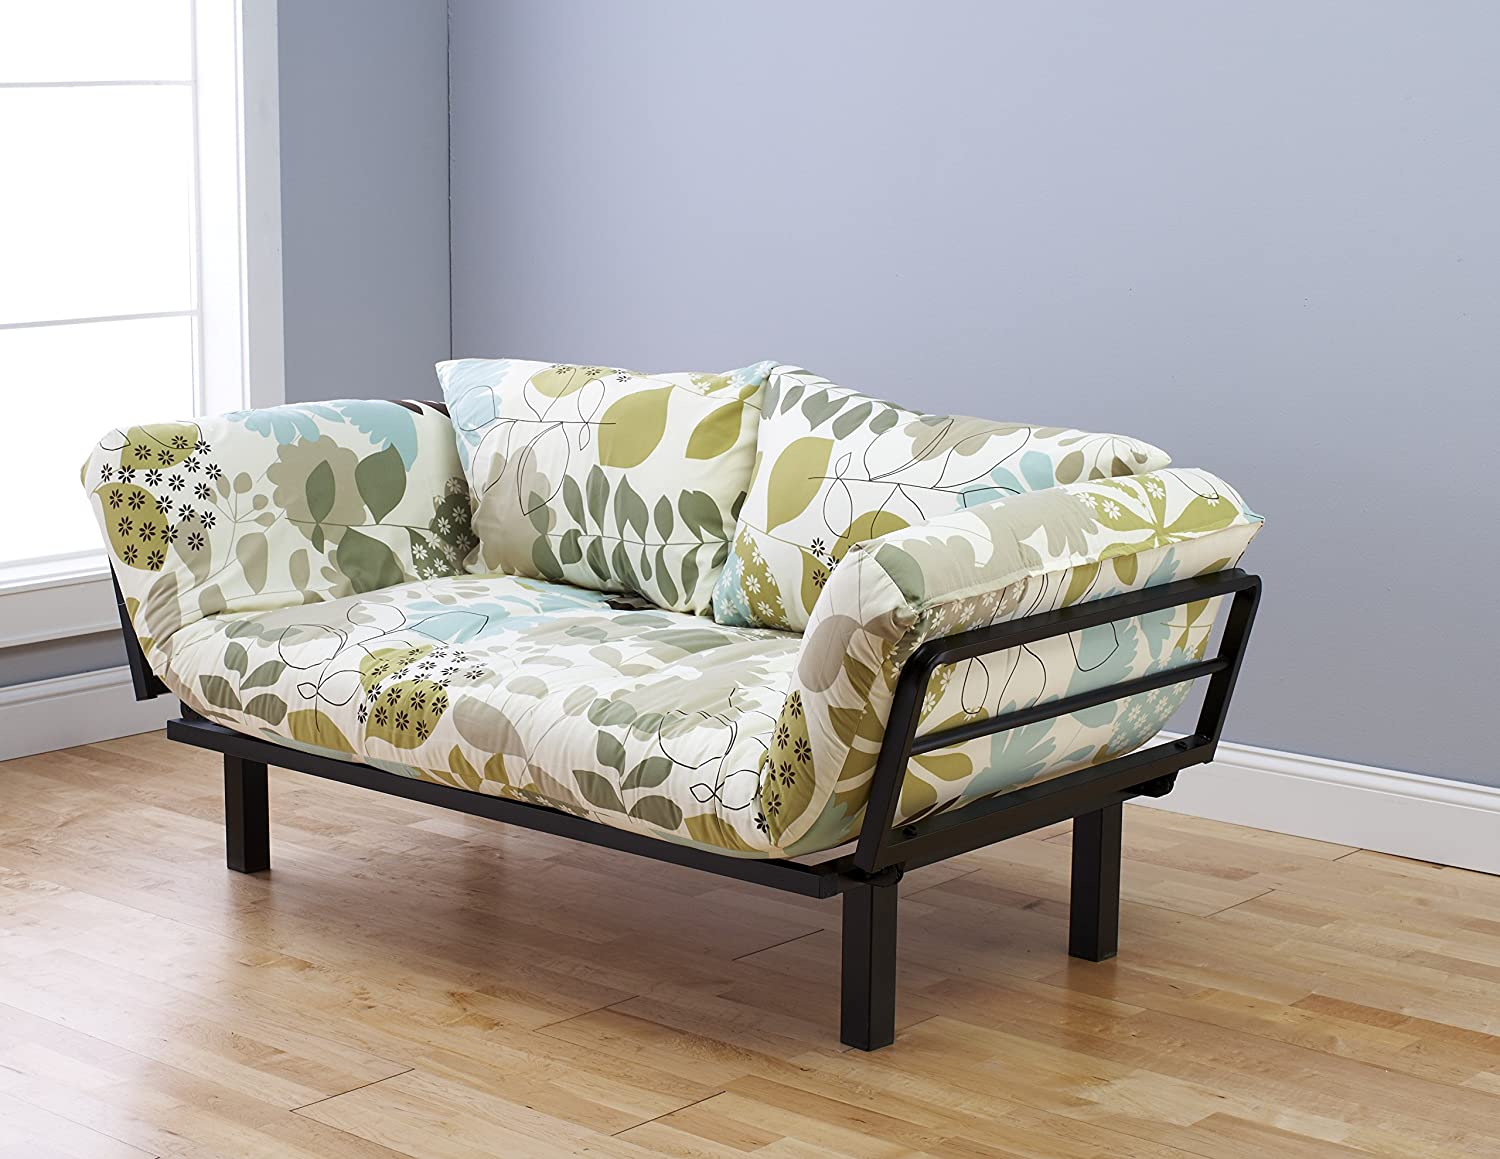 daybed. Amazon.com: Futon Sofa Couch And Daybed Or Twin Bed Size With 6 Mattress. Floral Cover Is Perfect For Smaller Bedroom, Studio Apartment, Guest Room, D